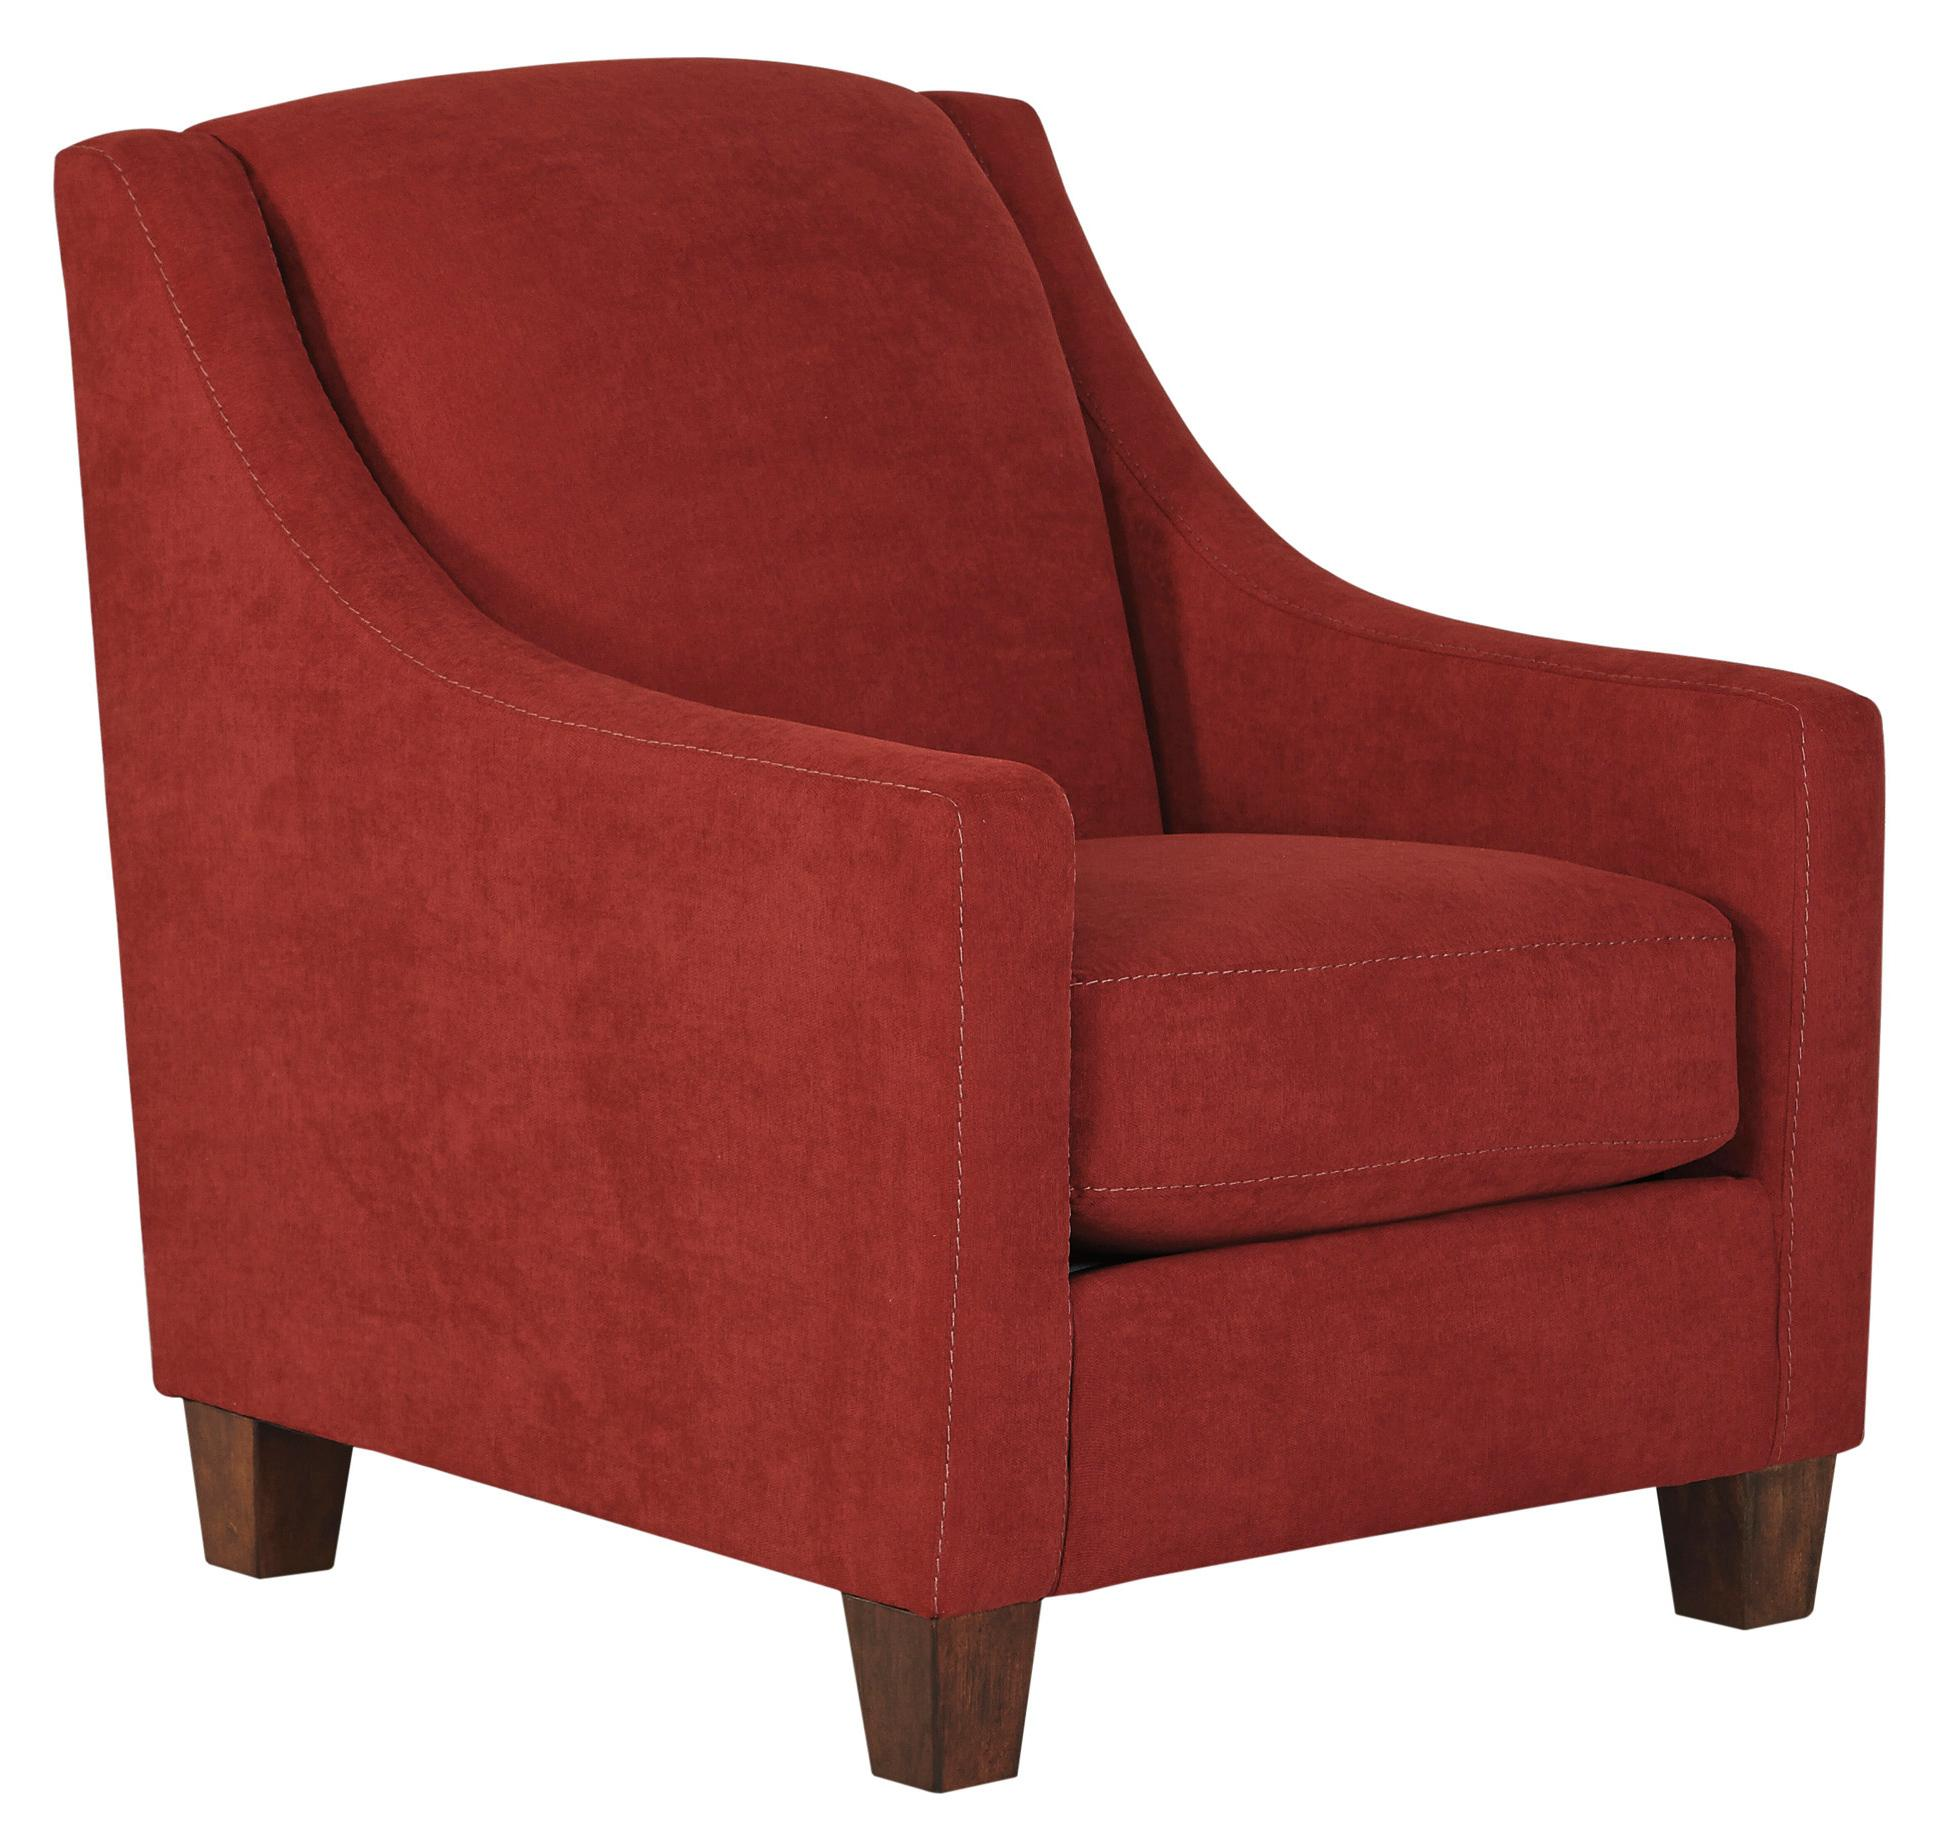 Benchcraft Maier - Sienna Accent Chair - Item Number: 4520221